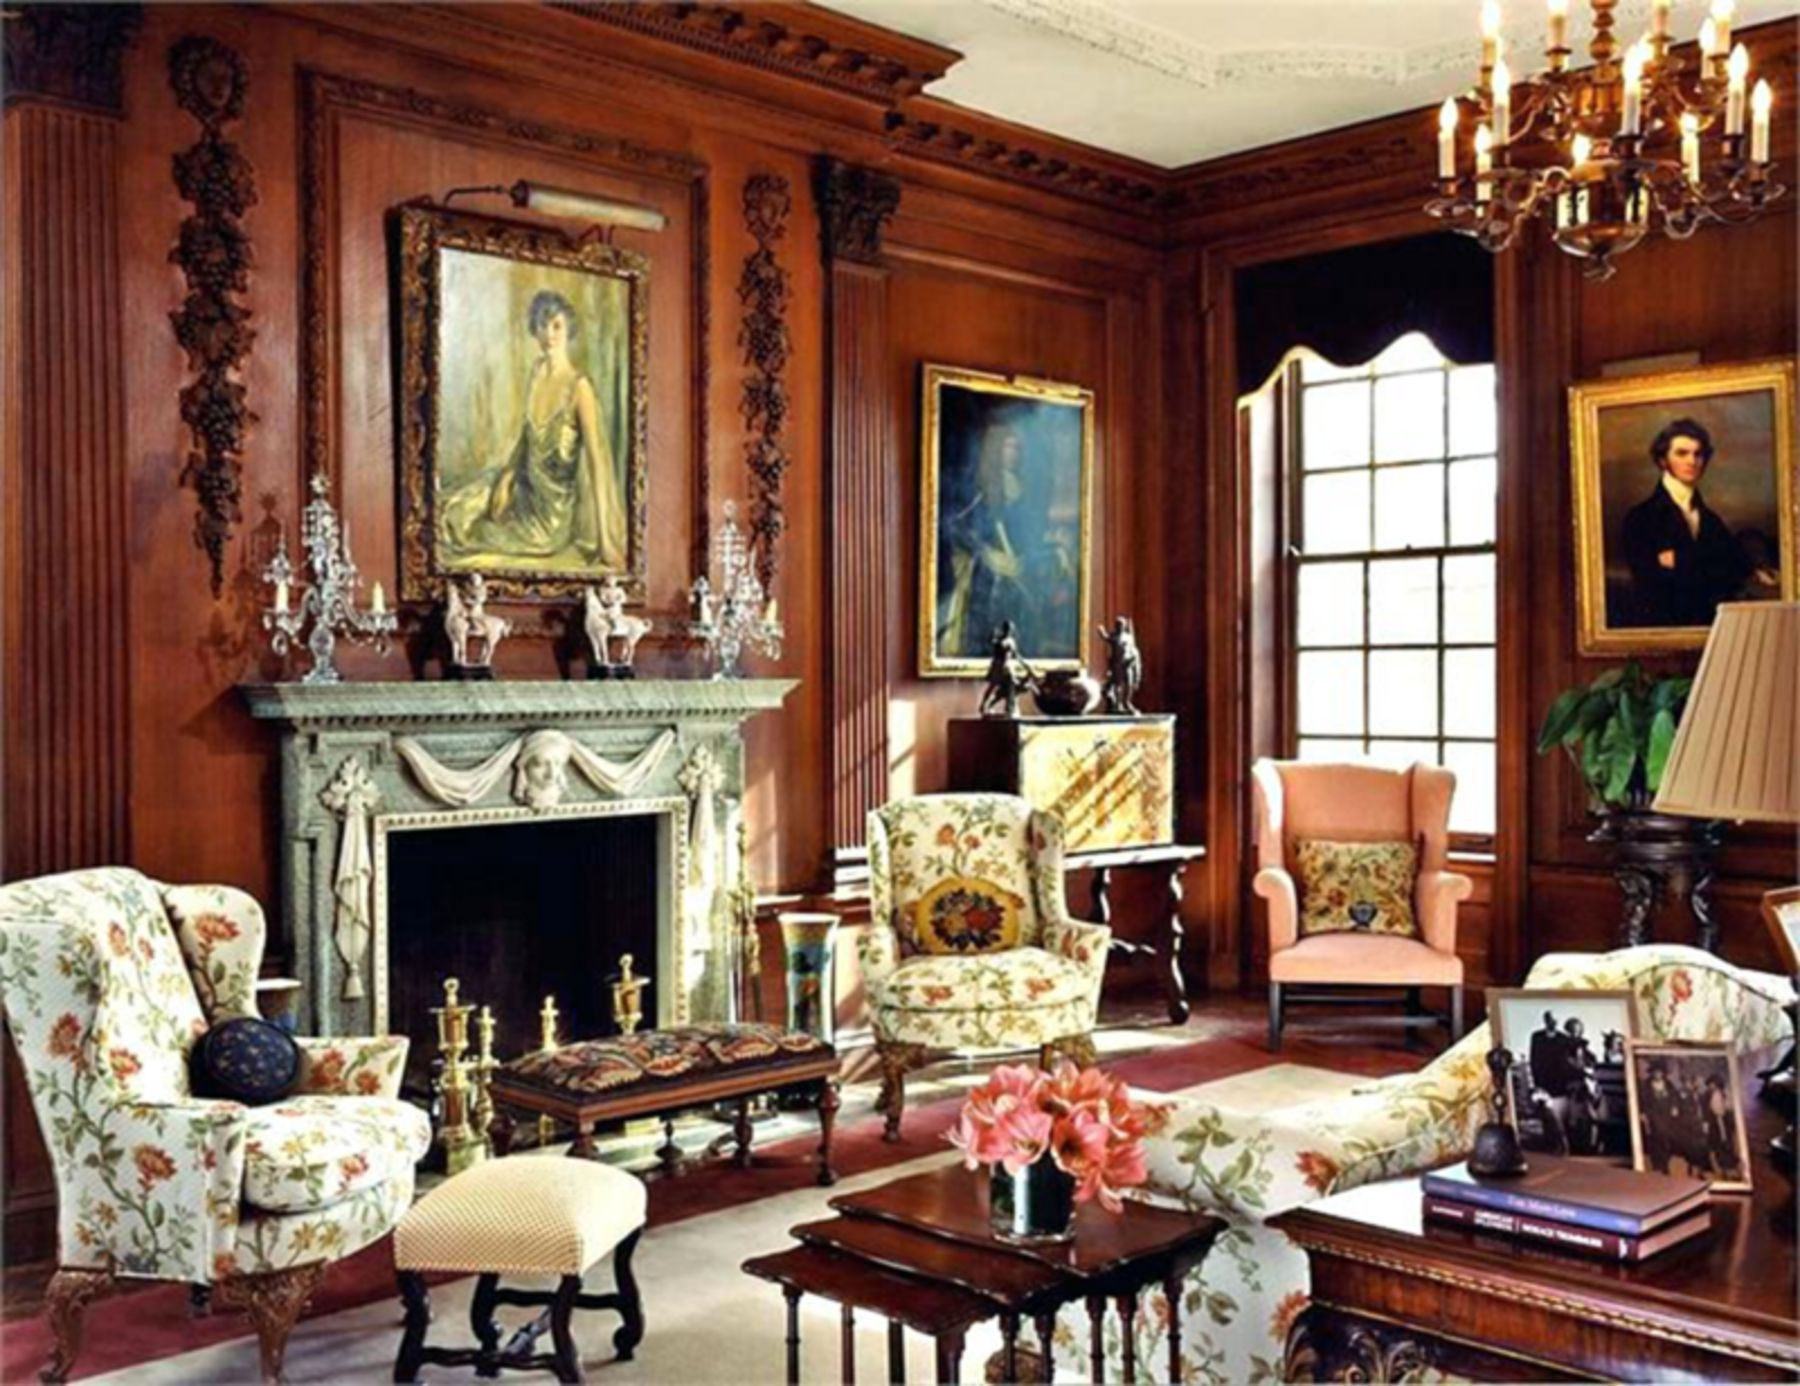 12 Gorgeous Victorian Living Room Design And Decoration Ideas For Best Inspirations Victorian Living Room Victorian Home Decor Minimalist Living Room Design